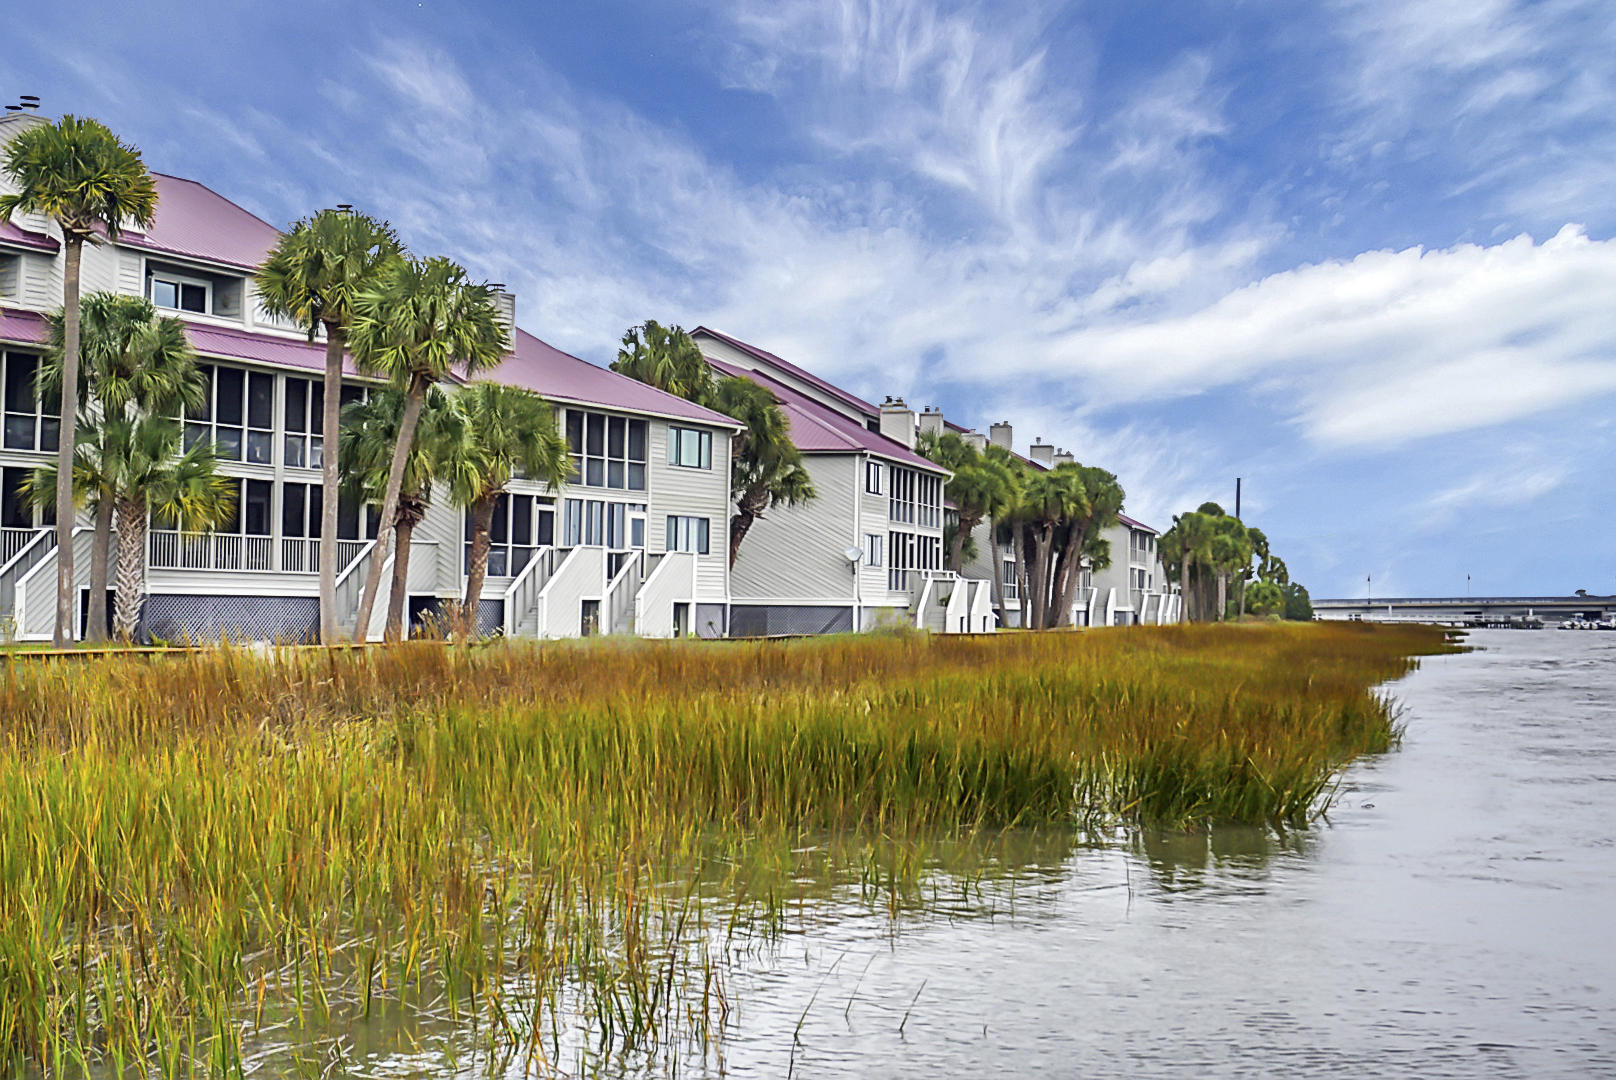 Mariners Cay Homes For Sale - 45 Mariners Cay, Folly Beach, SC - 78